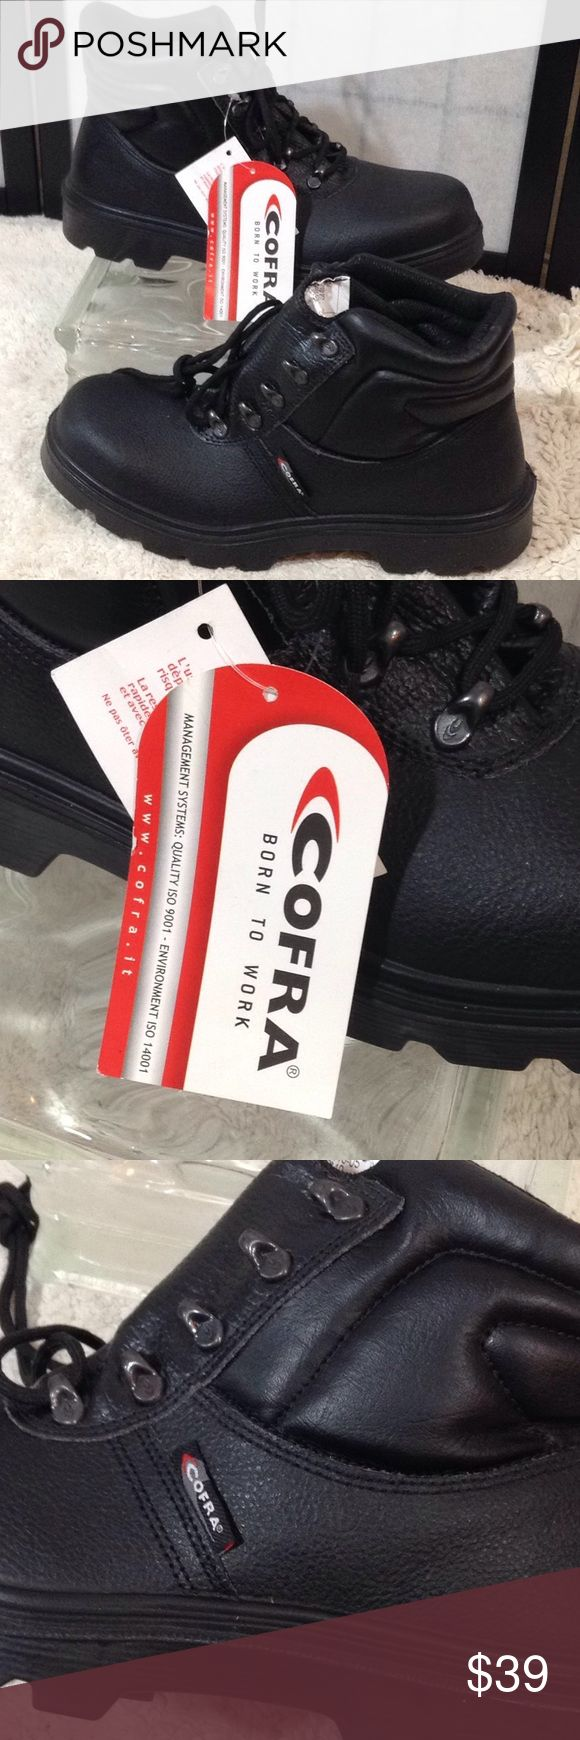 Cofra safety work boots Cofra black safety work boots; lace up front; oil resistant; Cofra - Born To Work; shoe comfort based on strength, durability, flexibility; NWT; size 10W/44.5 Cofra Shoes Boots